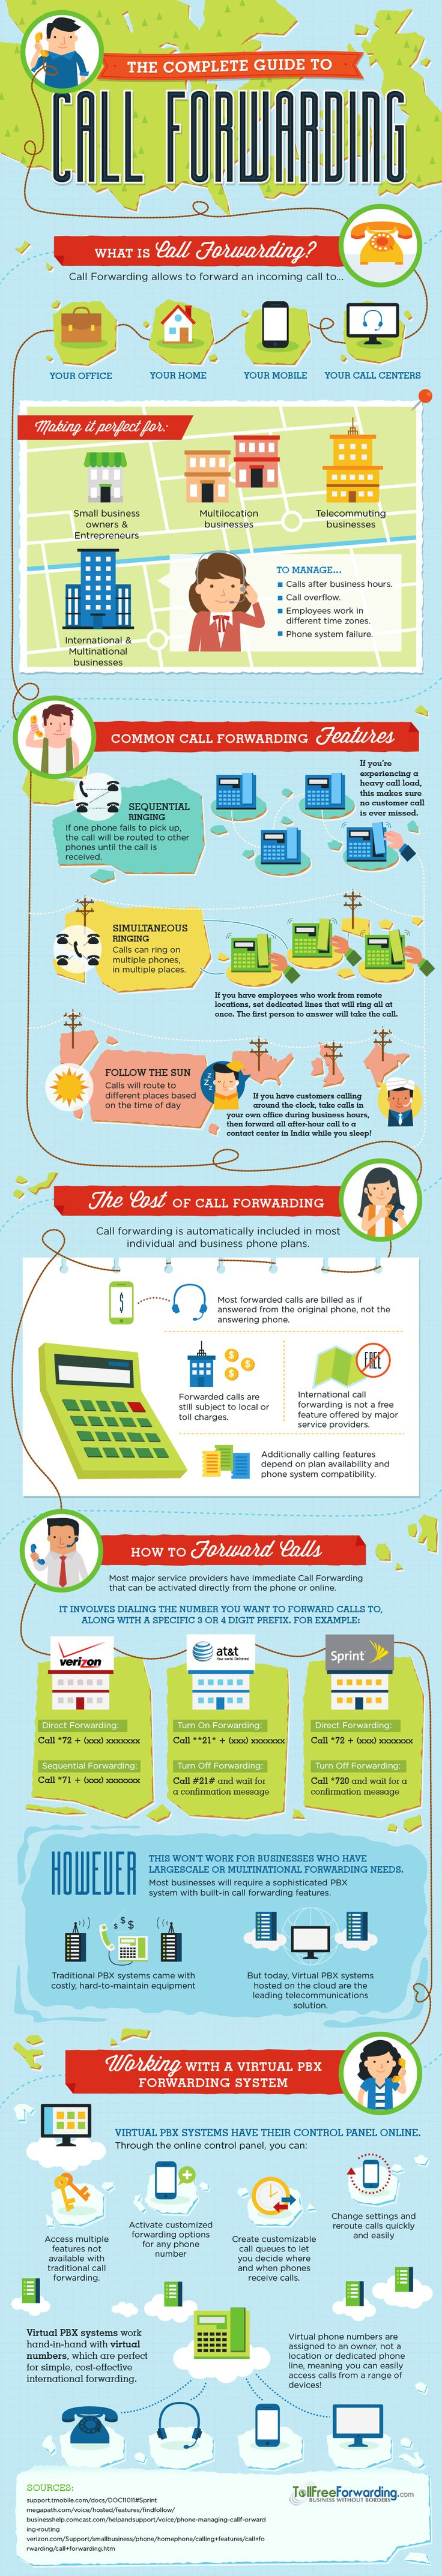 The Complete Guide to Call Forwarding #infographic #CallForwarding